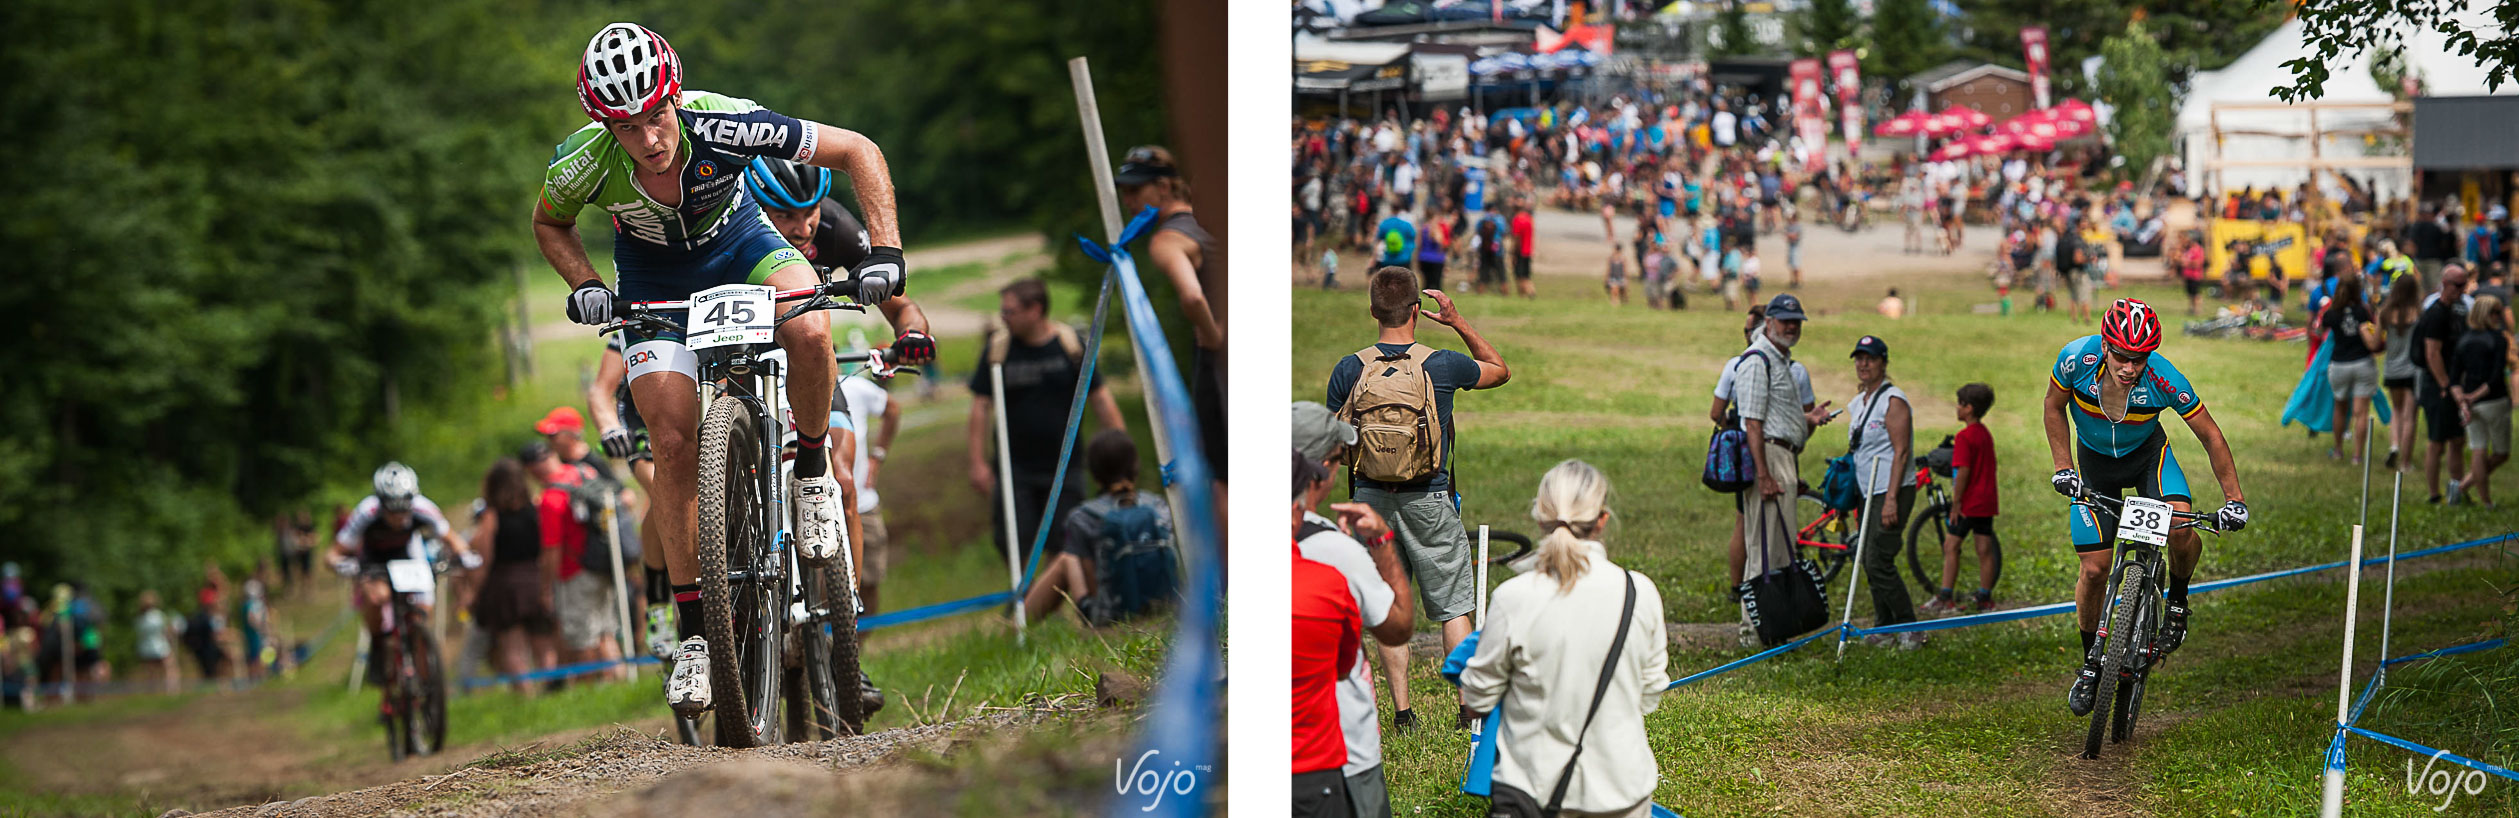 2-World_Cup_XC_Men_Hommes_Mont_Saint_Anne_MSA_2015_Podium_Copyright_ADobslaff_VojoMag-1